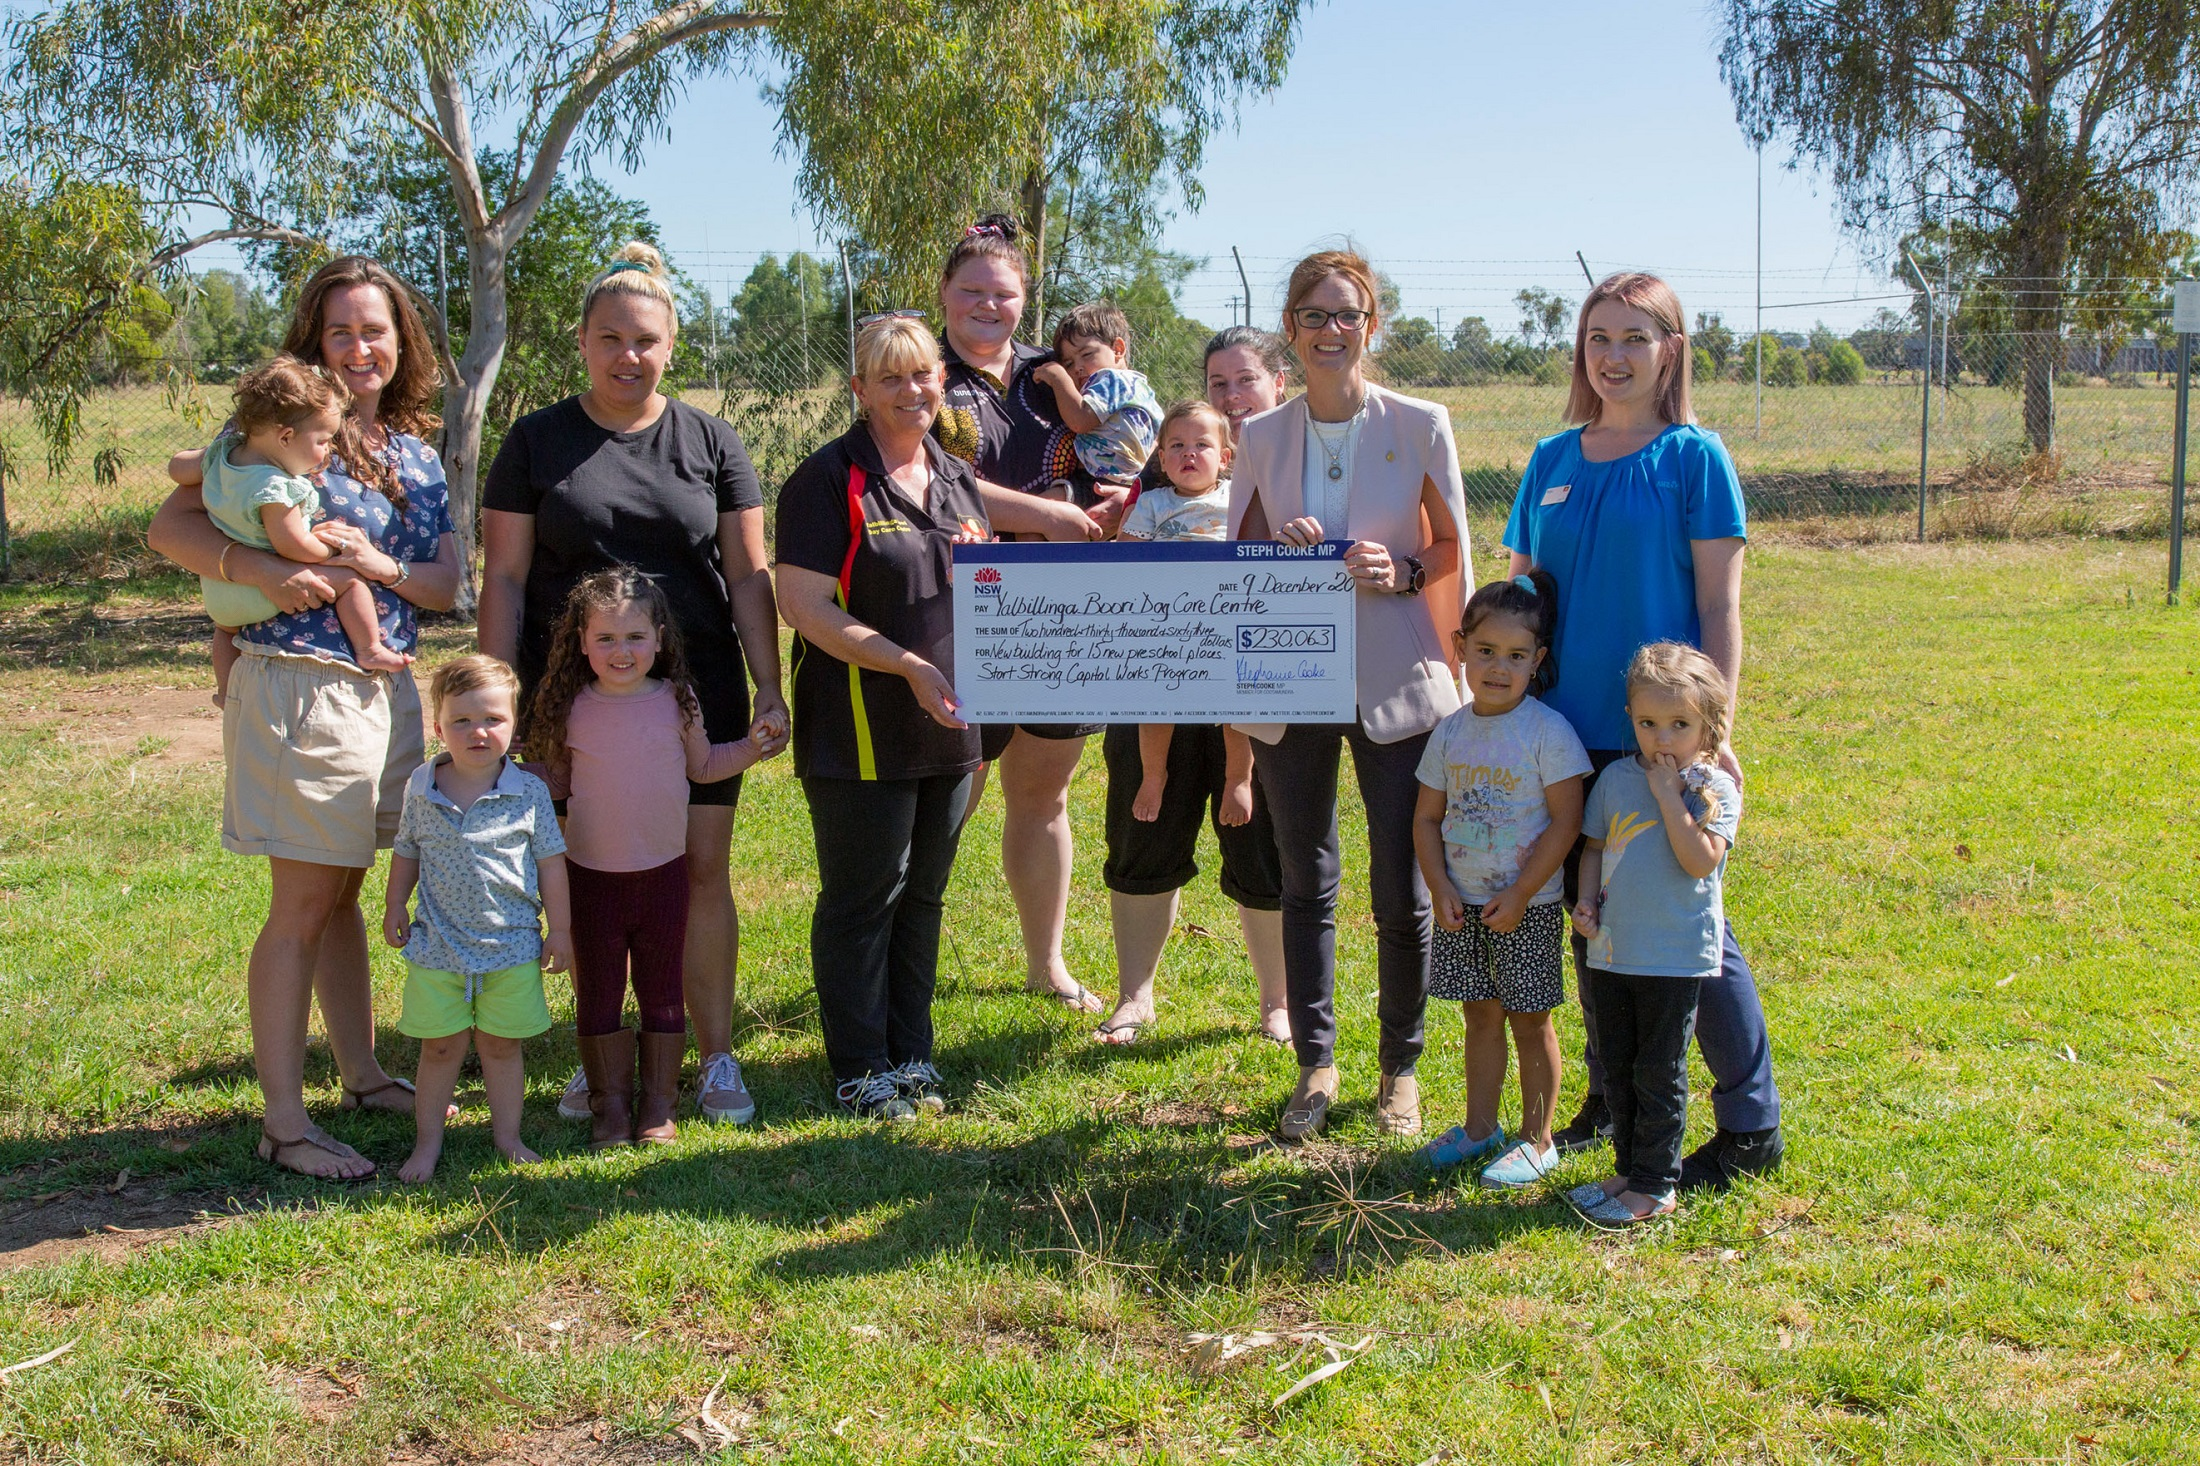 A group of women and small children stand together on grass. In the middle of the group Caroline Bamblett and Steph Cooke MP hold a large cheque.